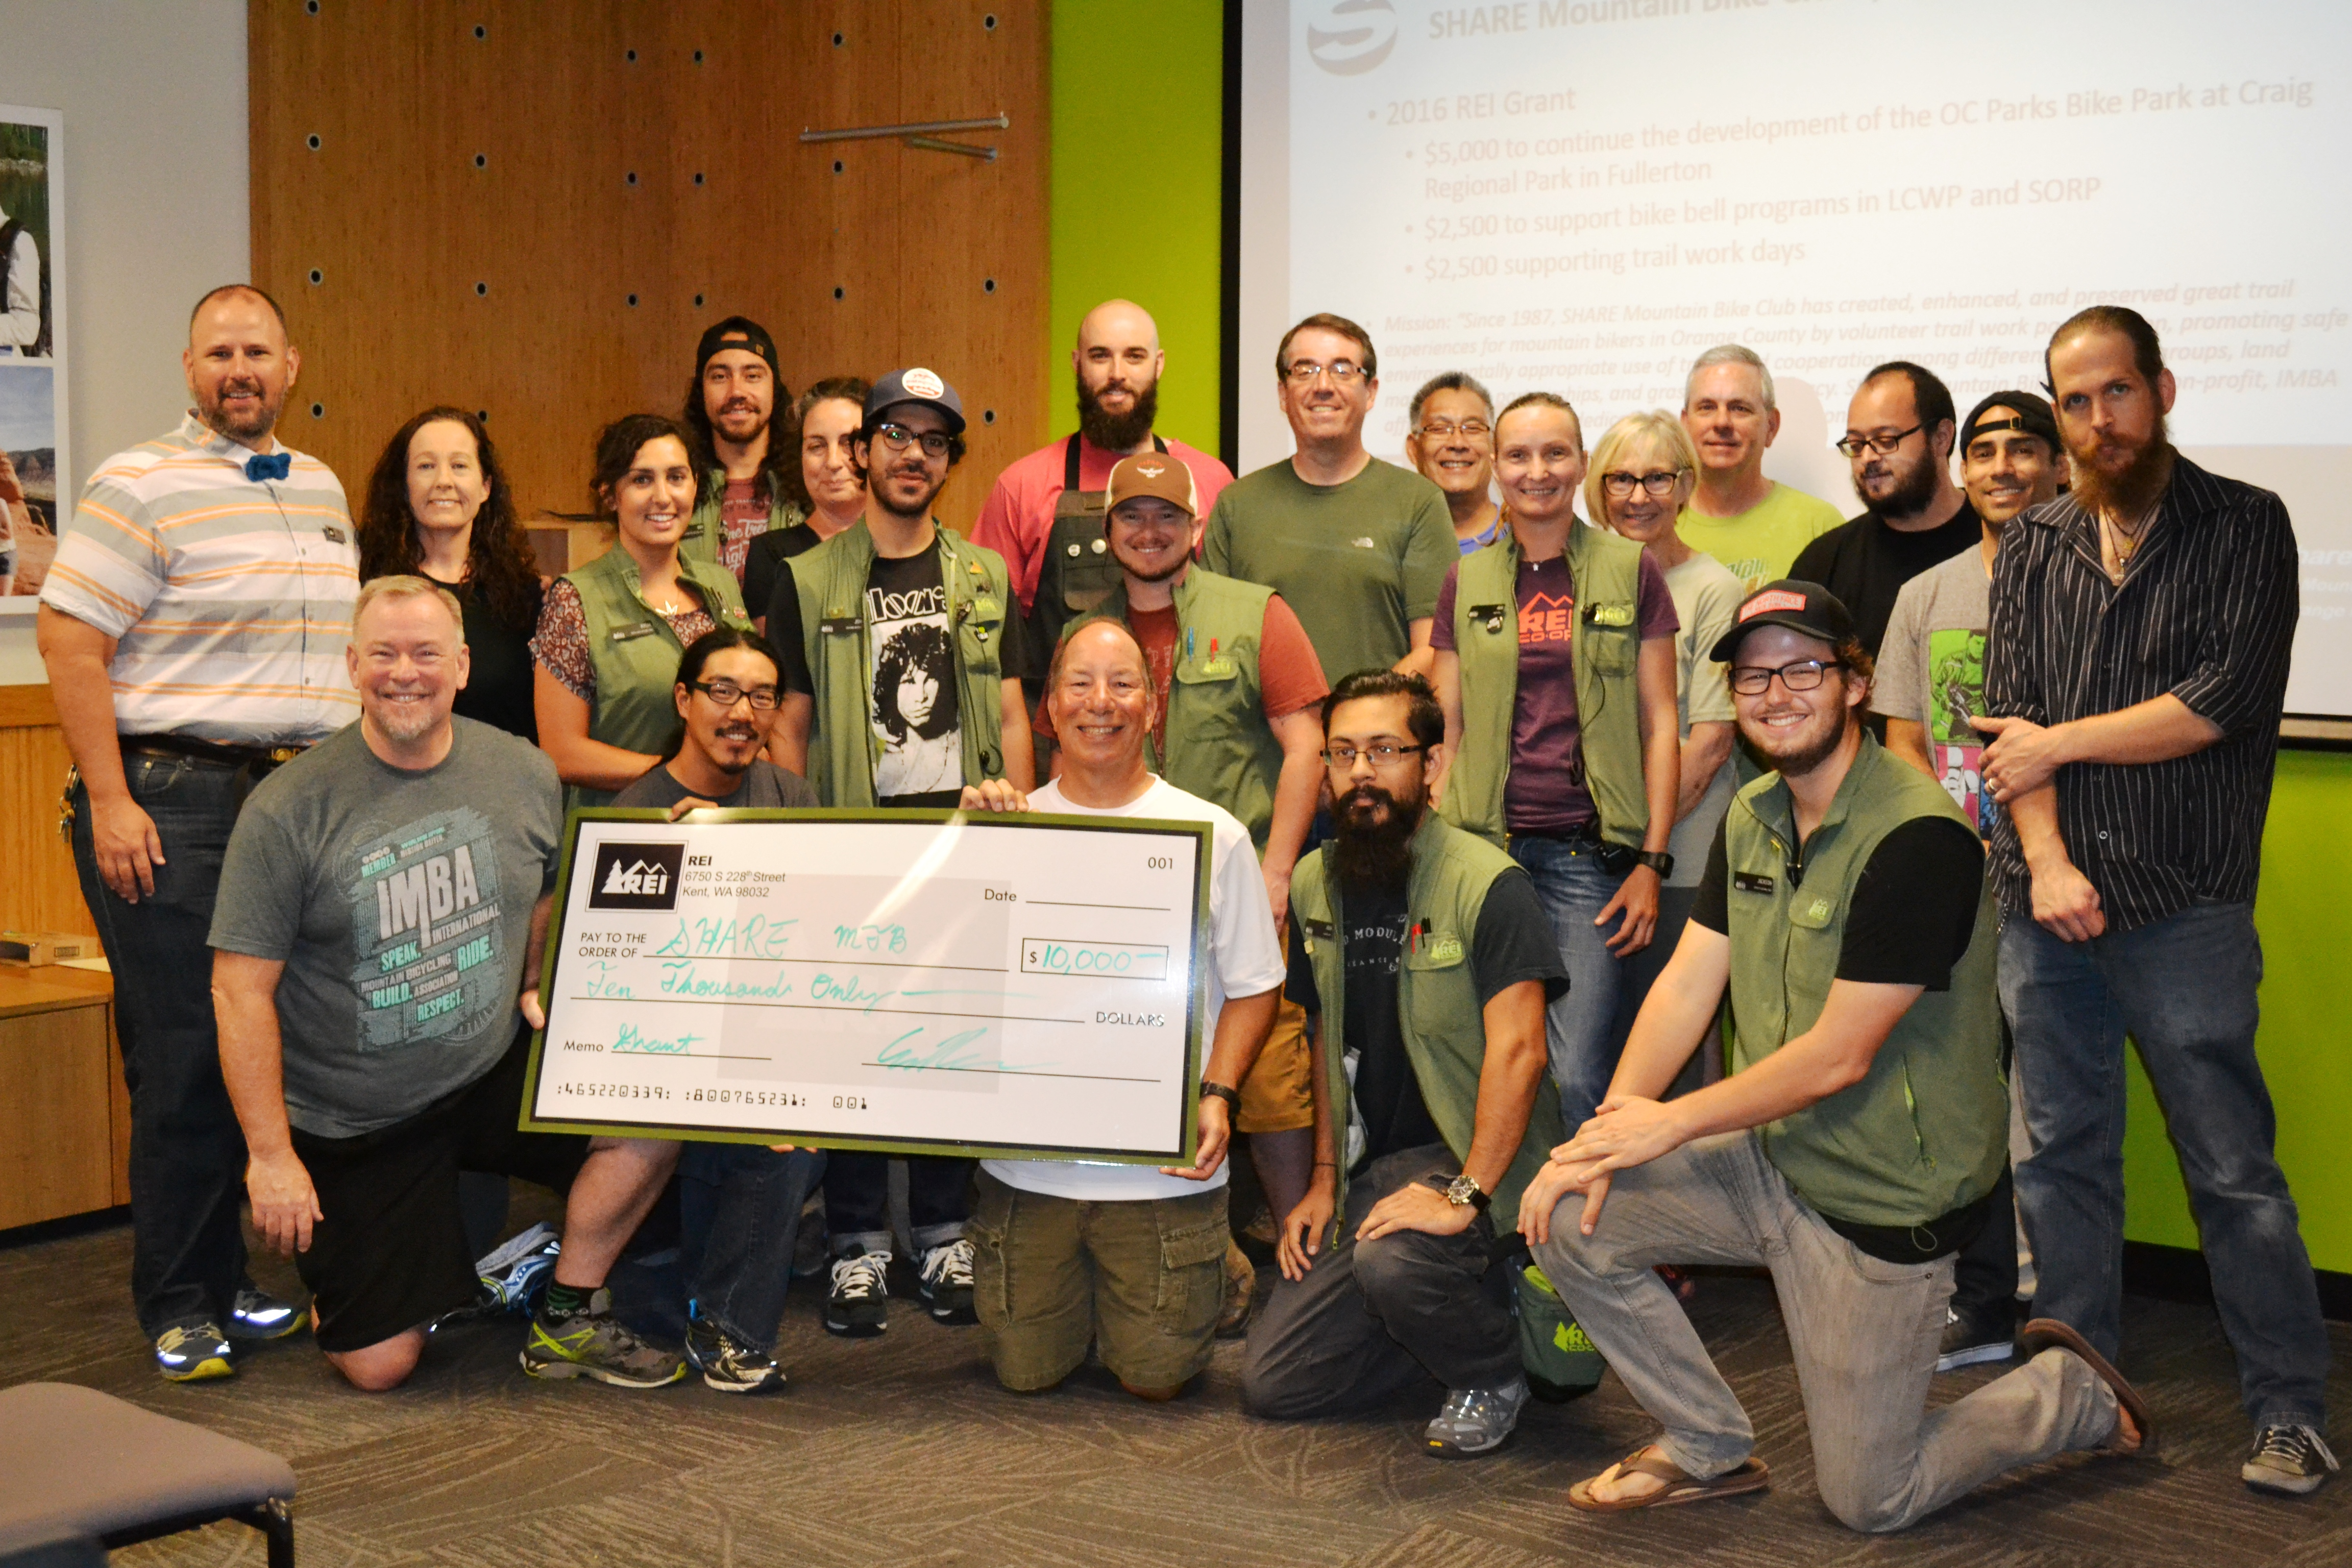 Thank you REI! $10,000 to SHARE and OC Parks